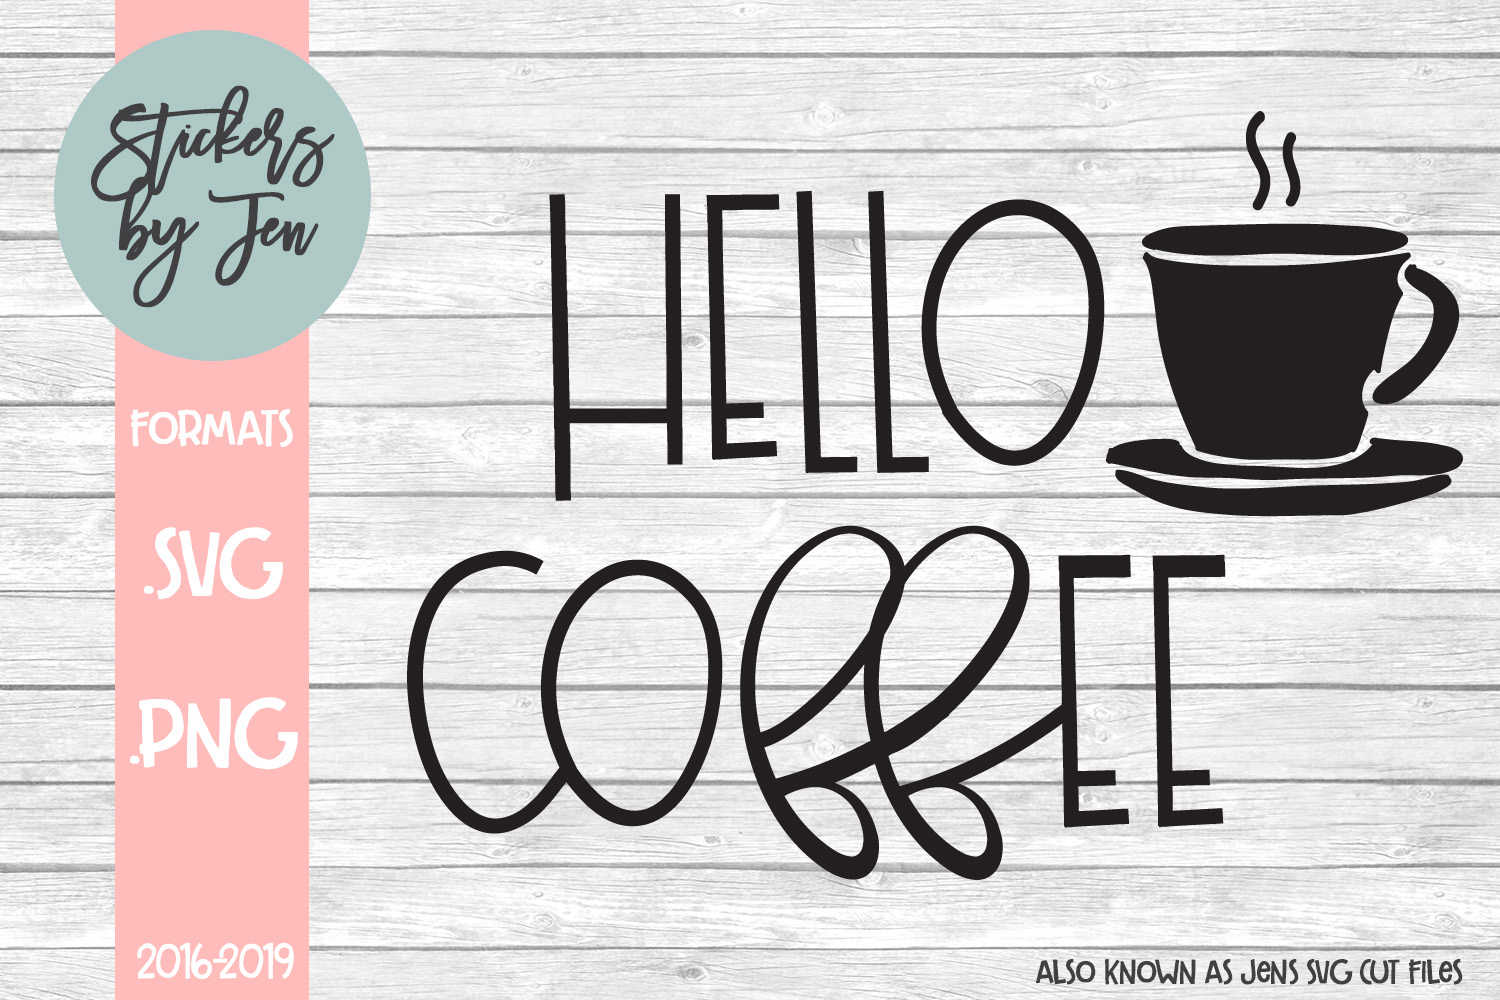 Download Free Hello Coffee Svg Grafik Von Stickers By Jennifer Creative Fabrica for Cricut Explore, Silhouette and other cutting machines.